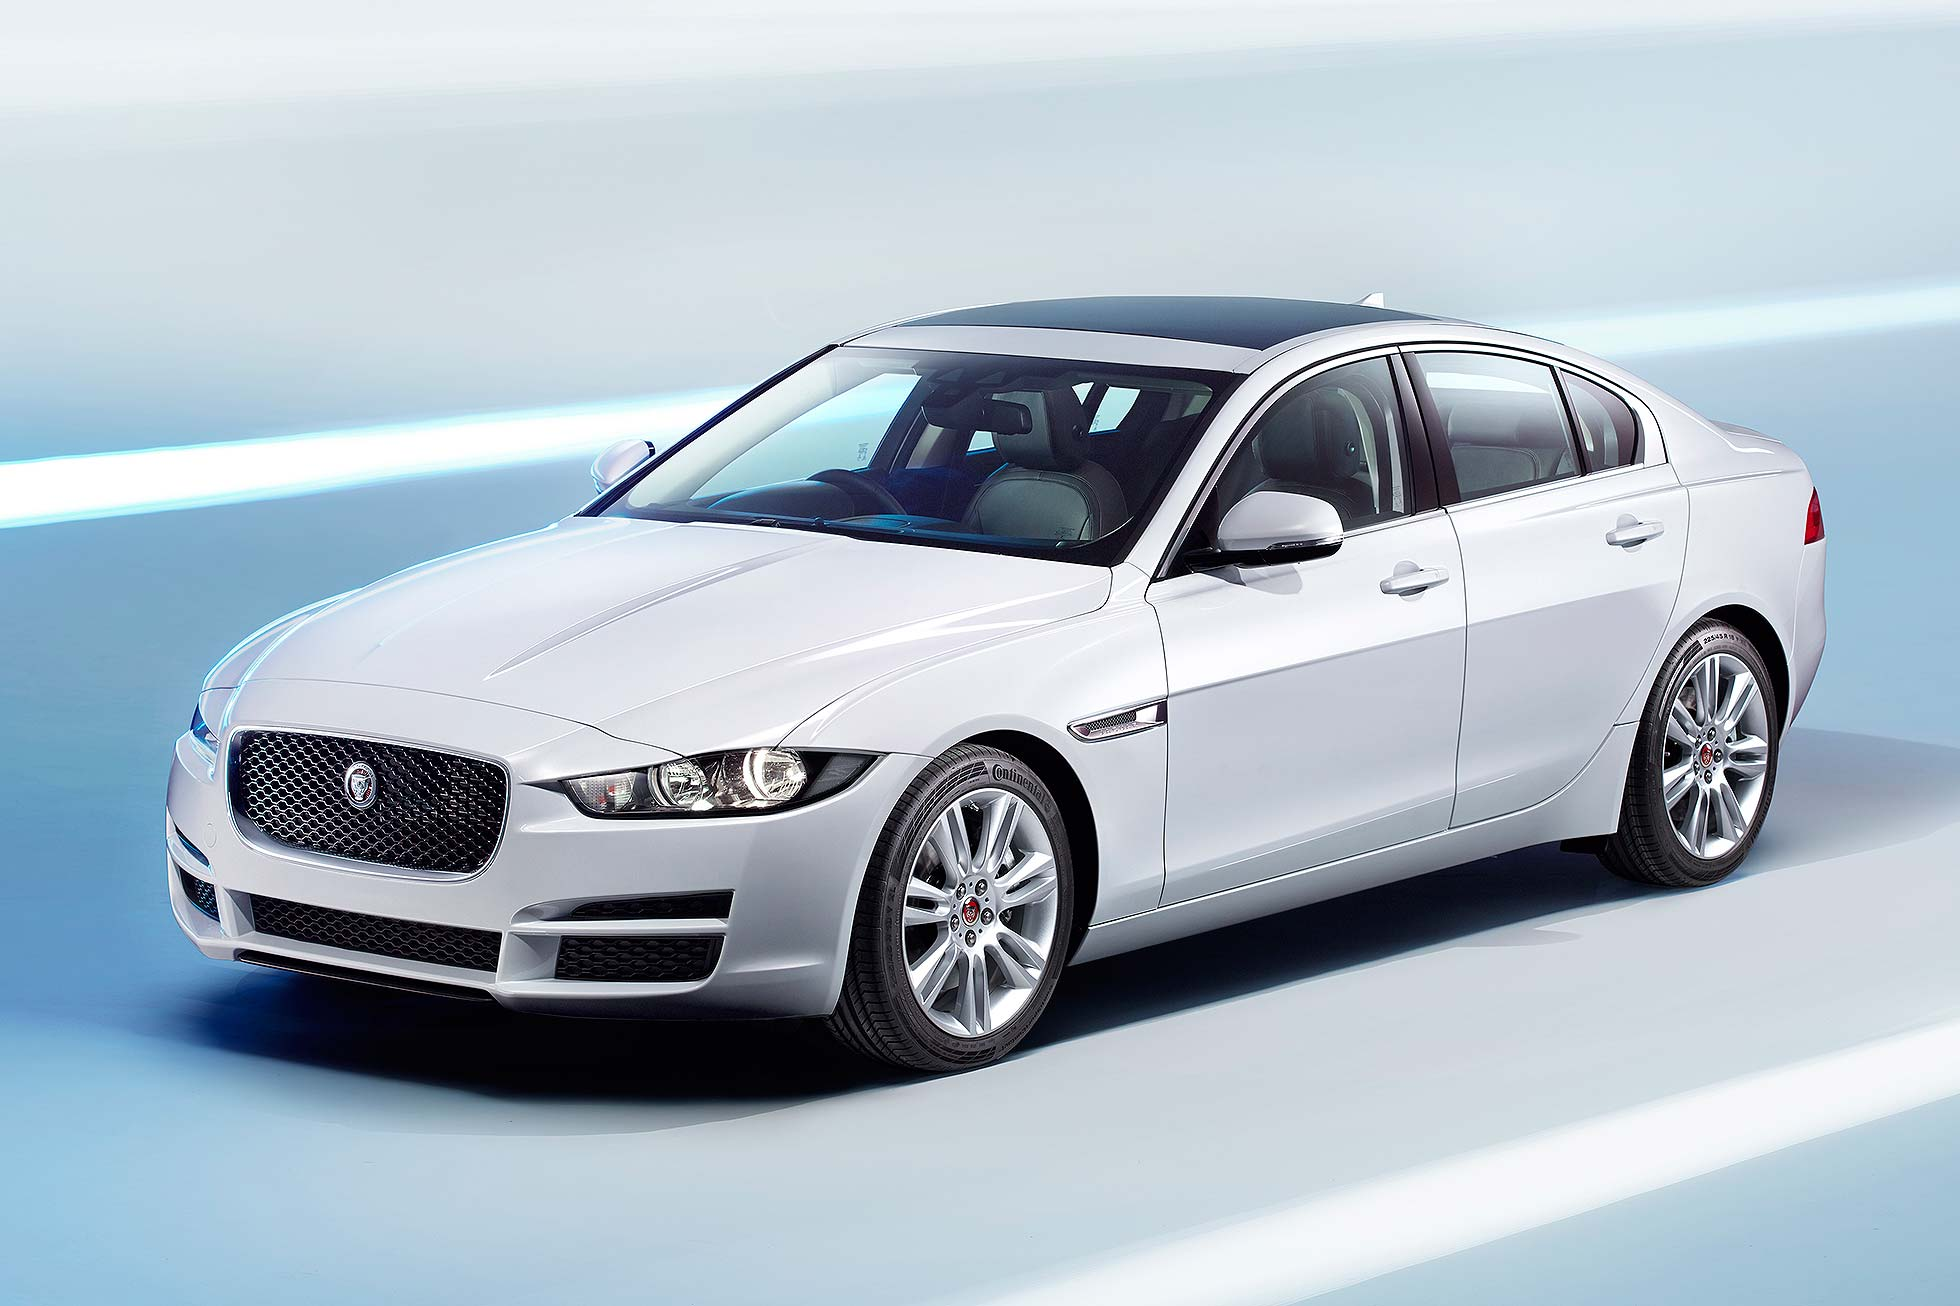 Jaguar xe residual values best in class motoring research for Mercedes benz residual value